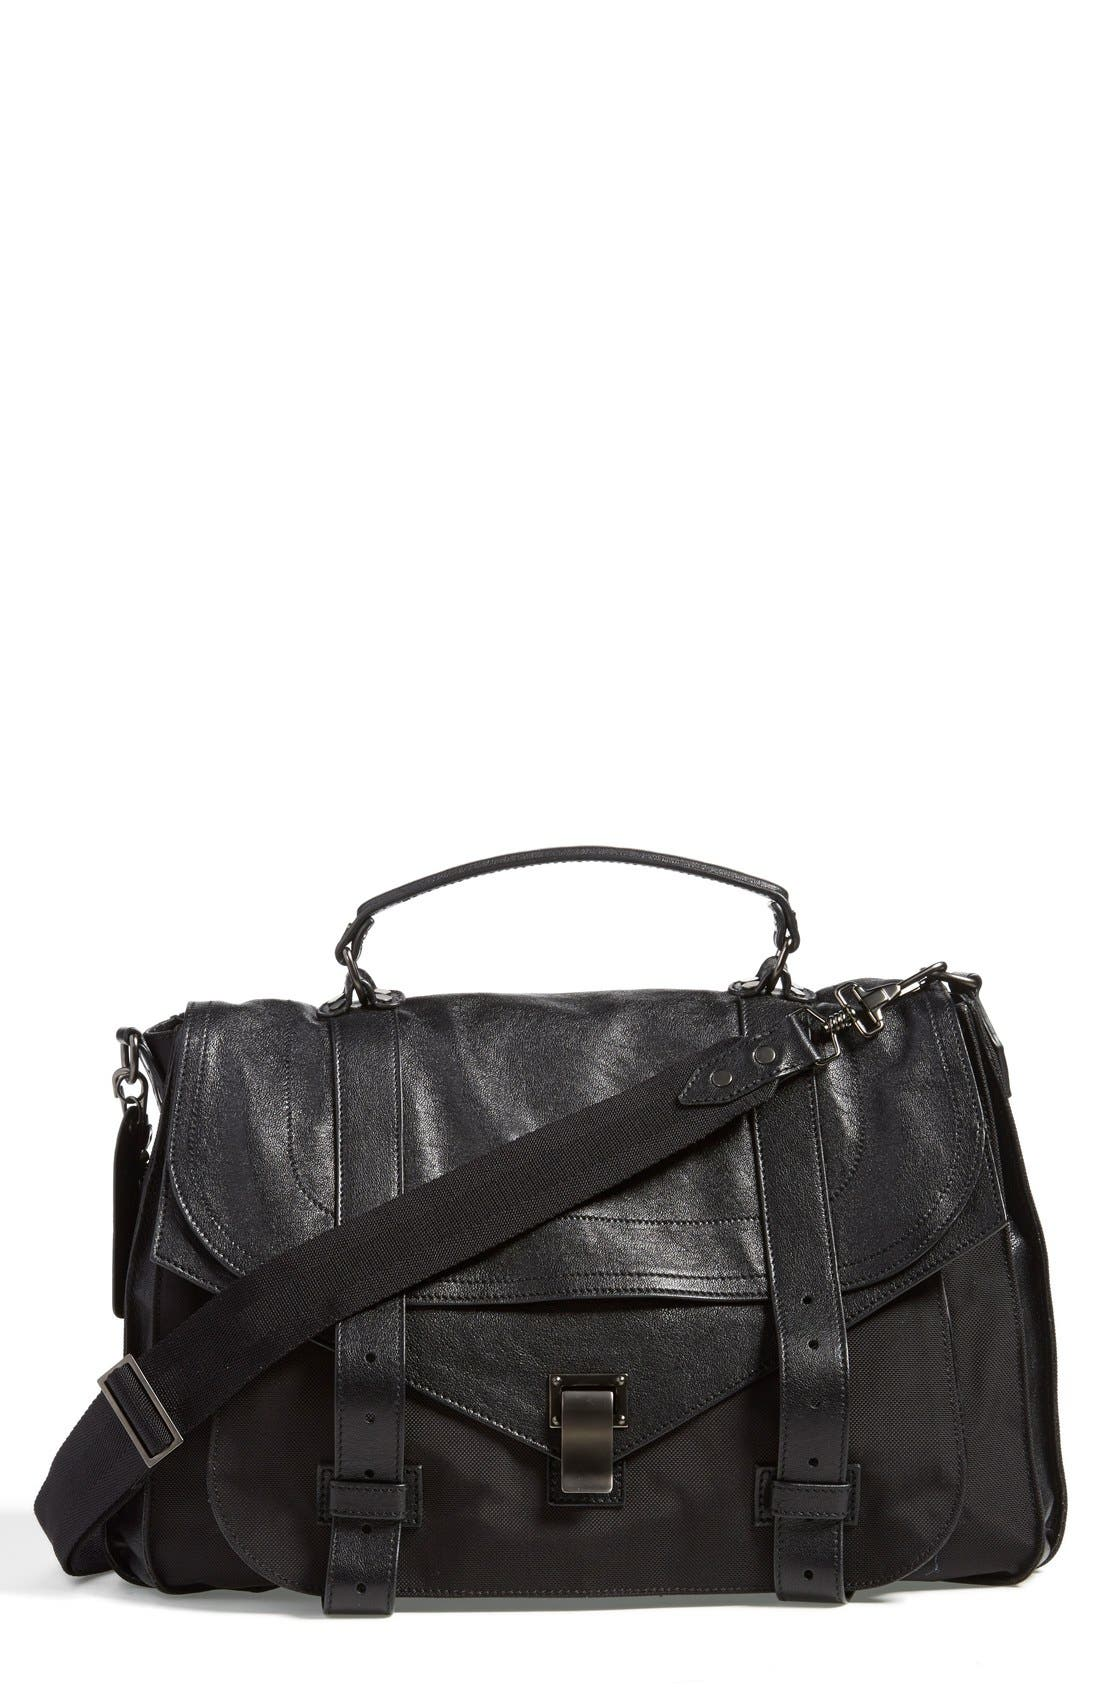 PROENZA SCHOULER 'Extra Large PS1' Nylon & Leather Messenger Bag, Main, color, 001